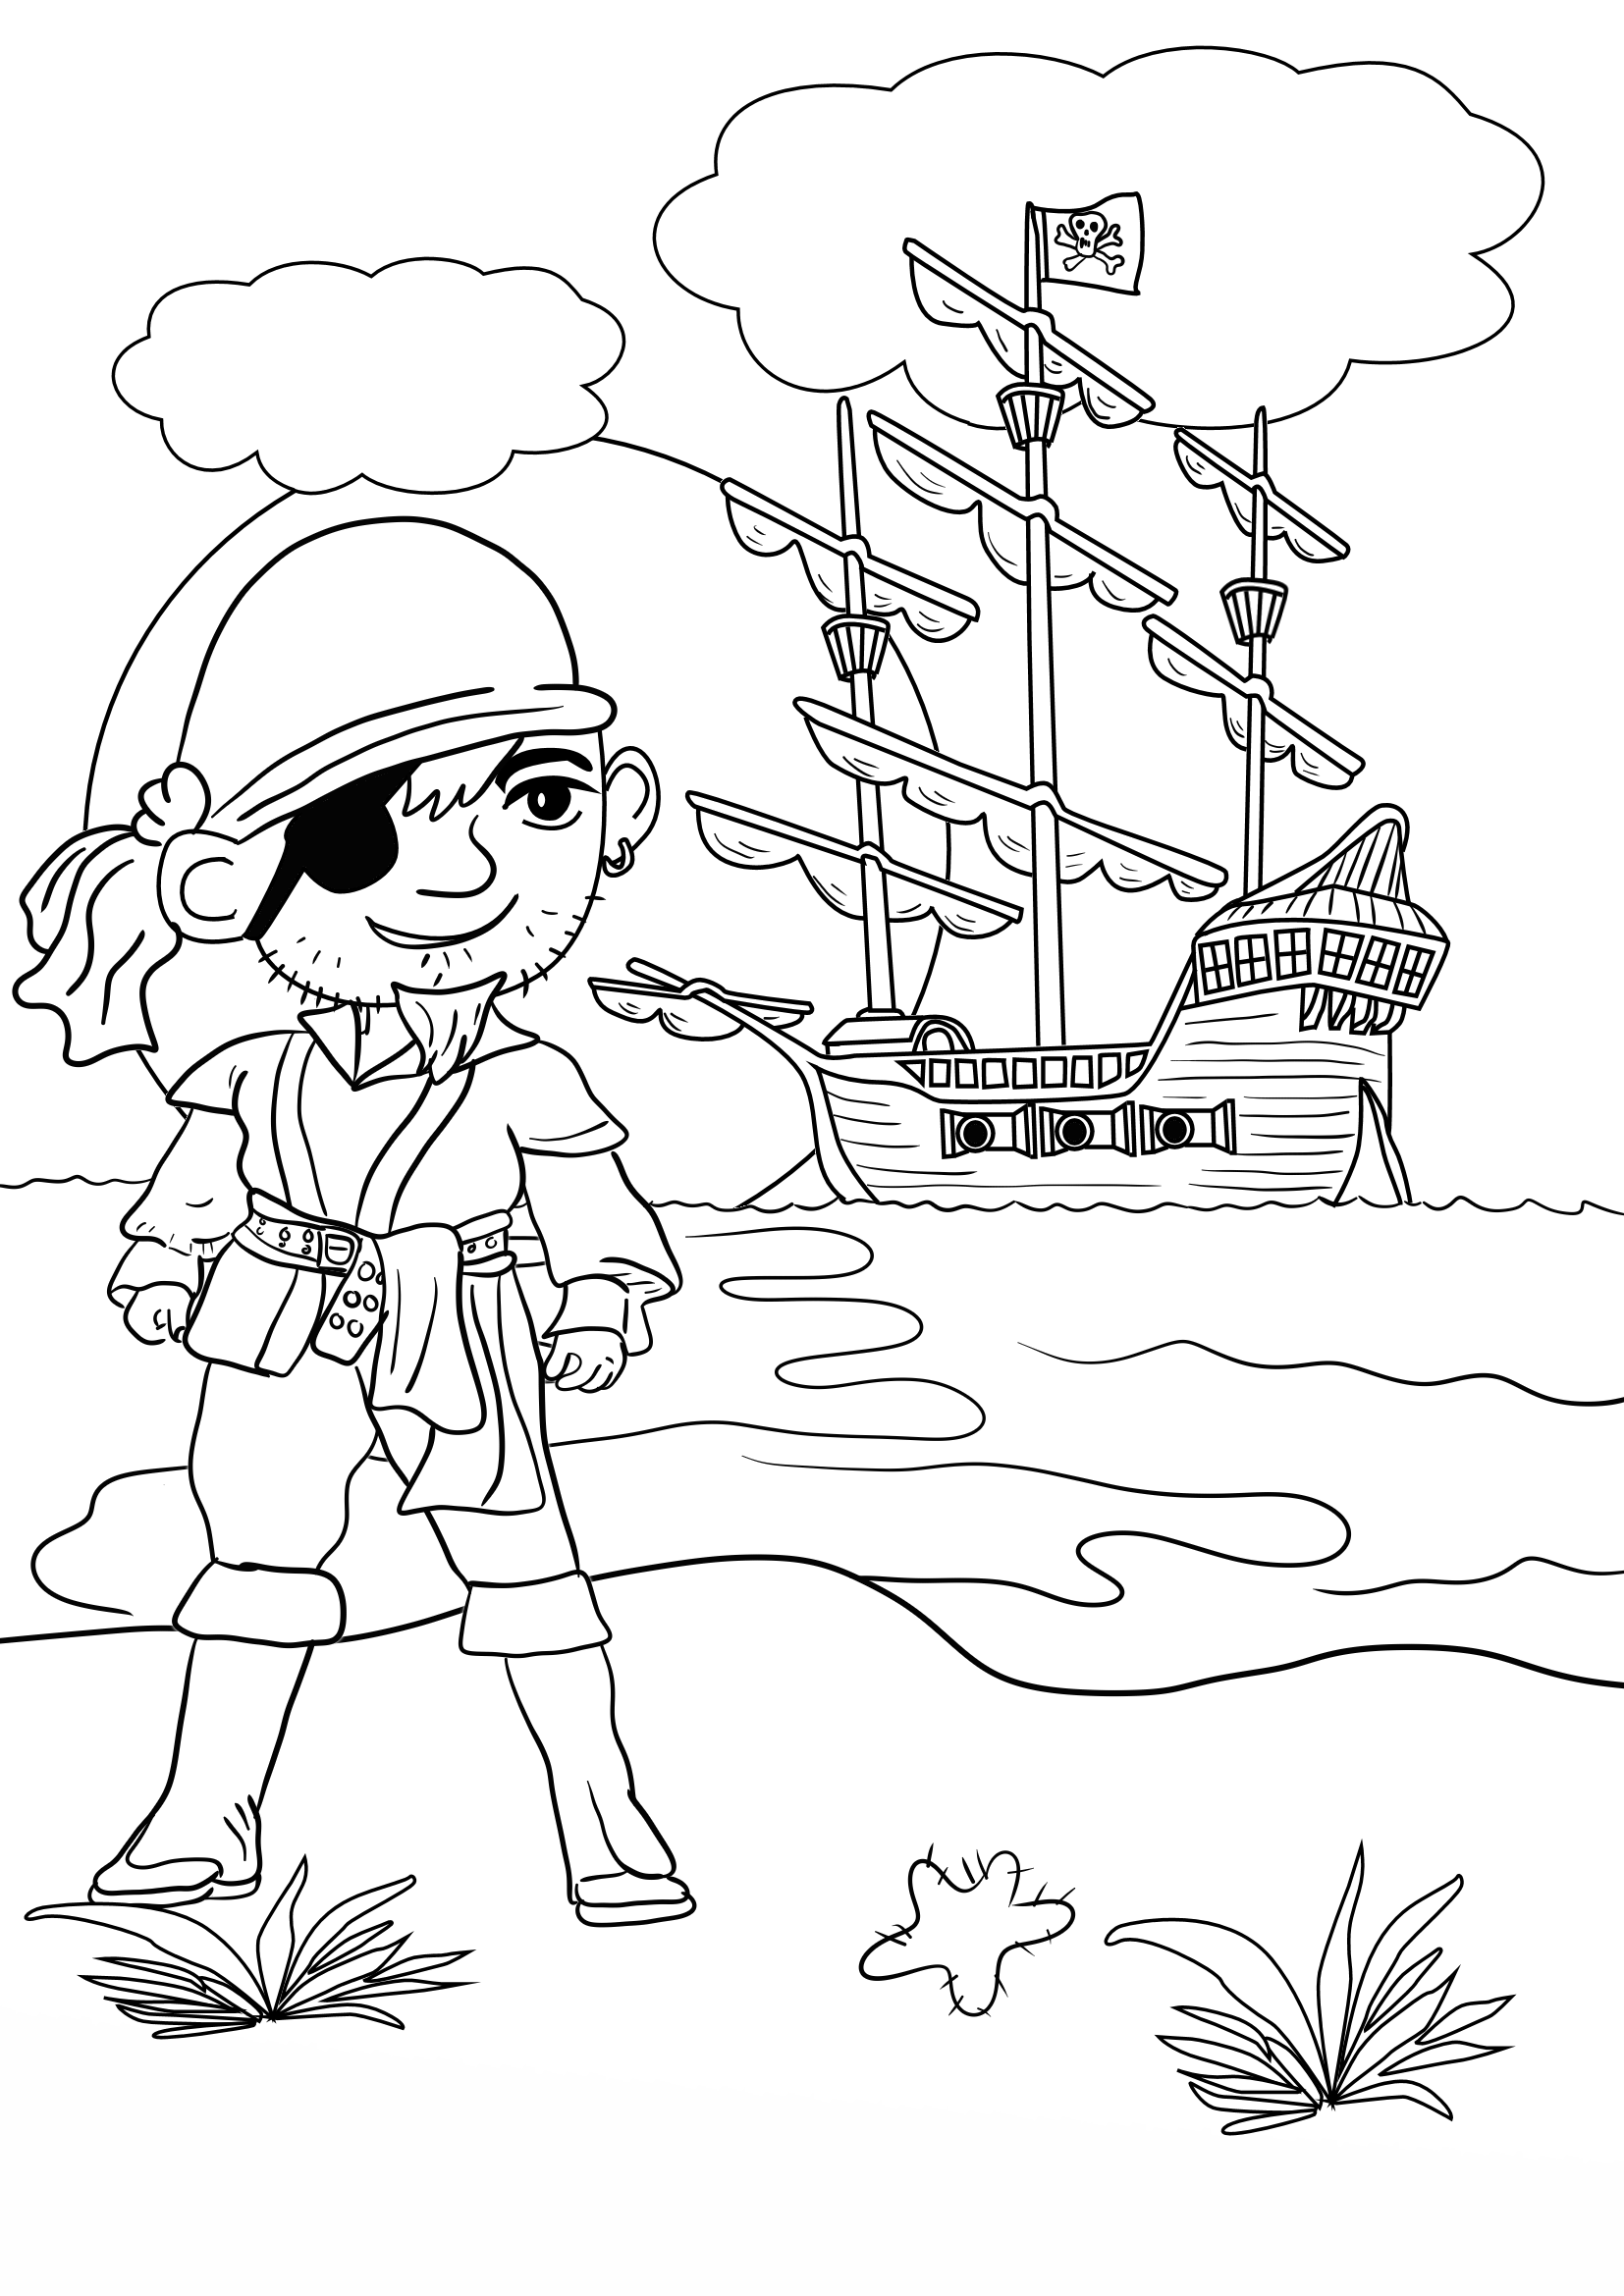 Pirate treasure coloring pages - photo#36